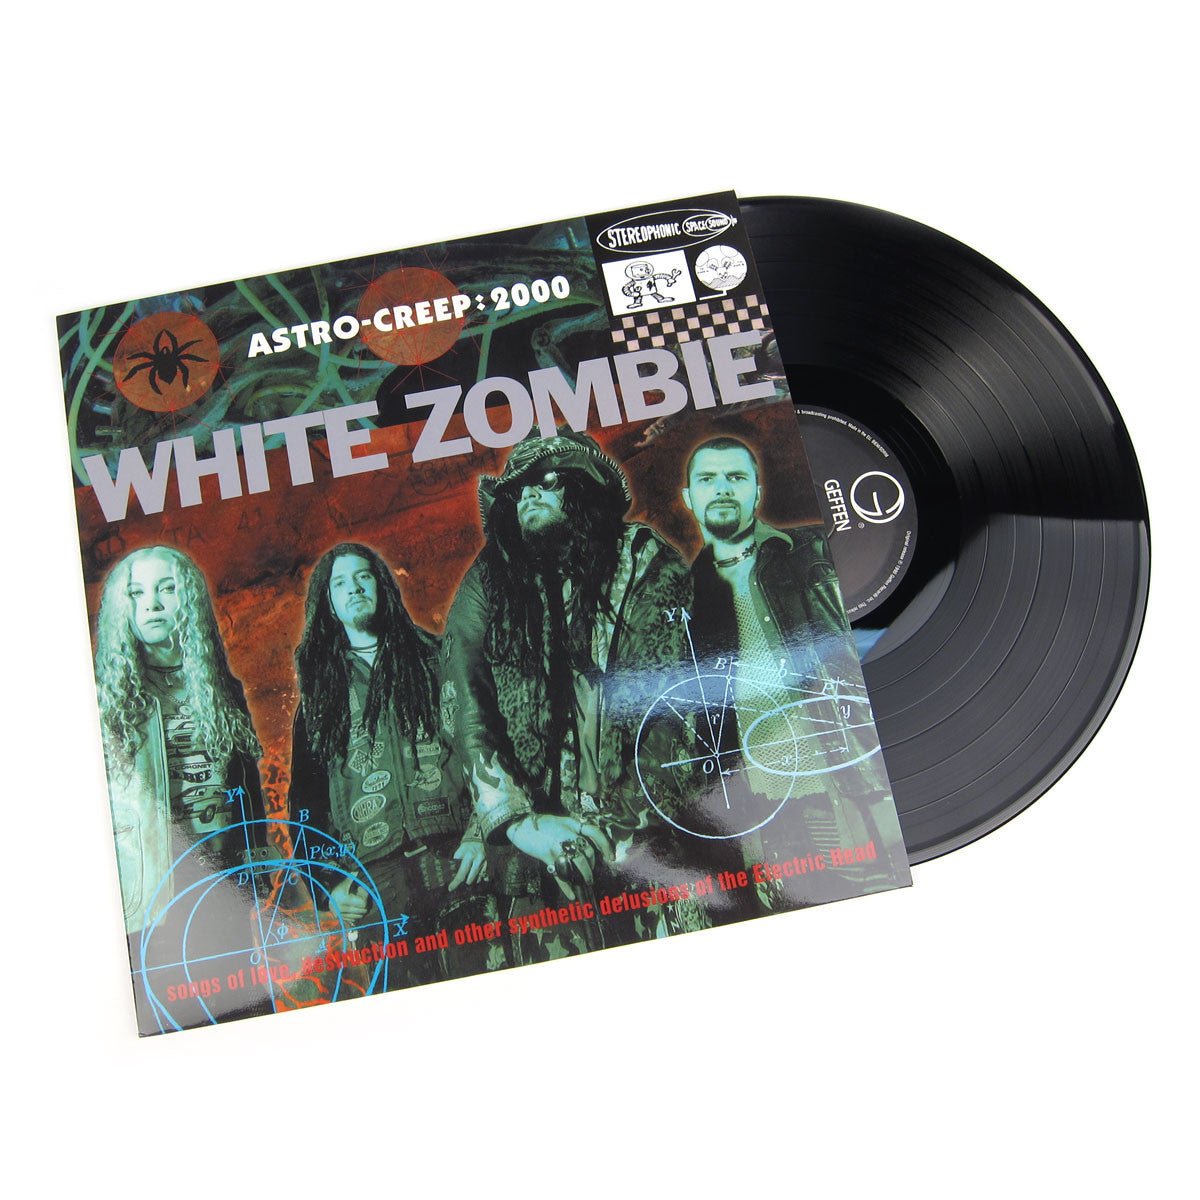 White Zombie: Astro-Creep 2000 (Music On Vinyl 180g) Vinyl LP